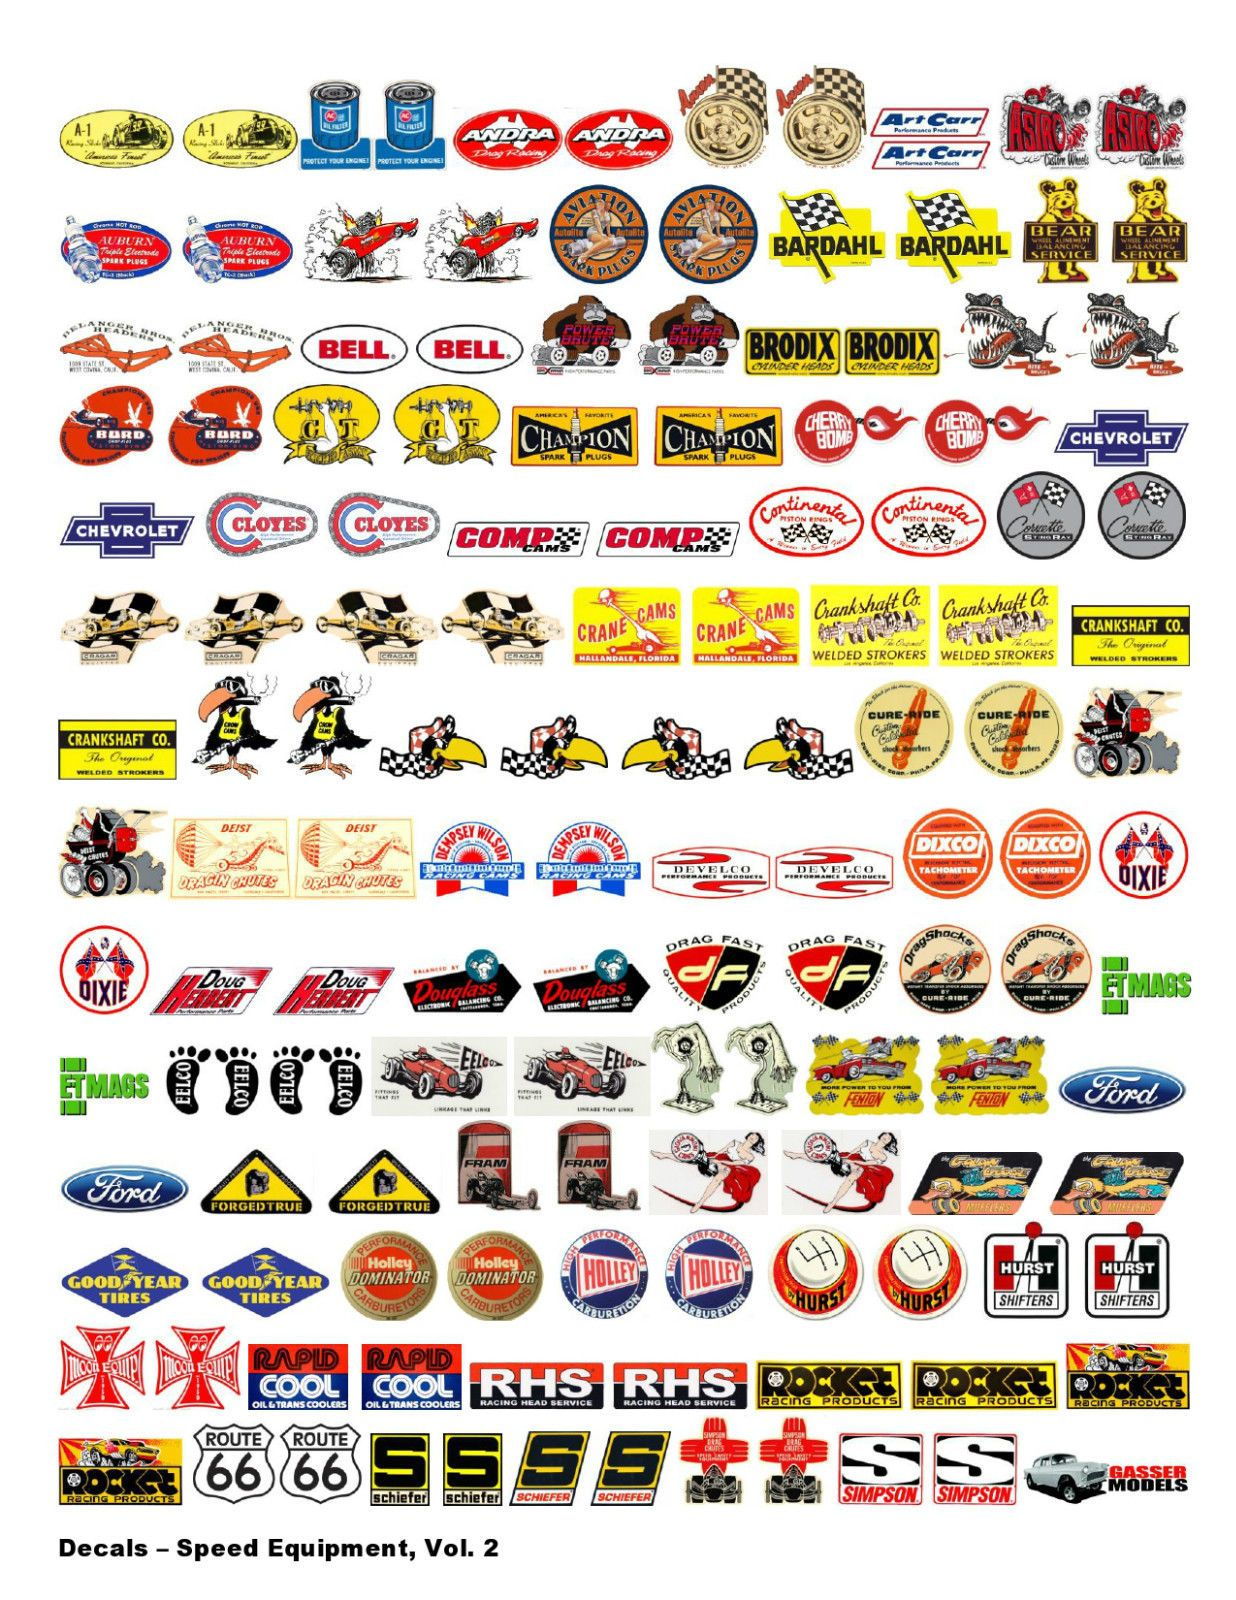 Nostalgic Decals Speed Equipment Volume 2 1 18 Scale Decal Sheets Car Decals Diecast Model Cars [ 1600 x 1236 Pixel ]